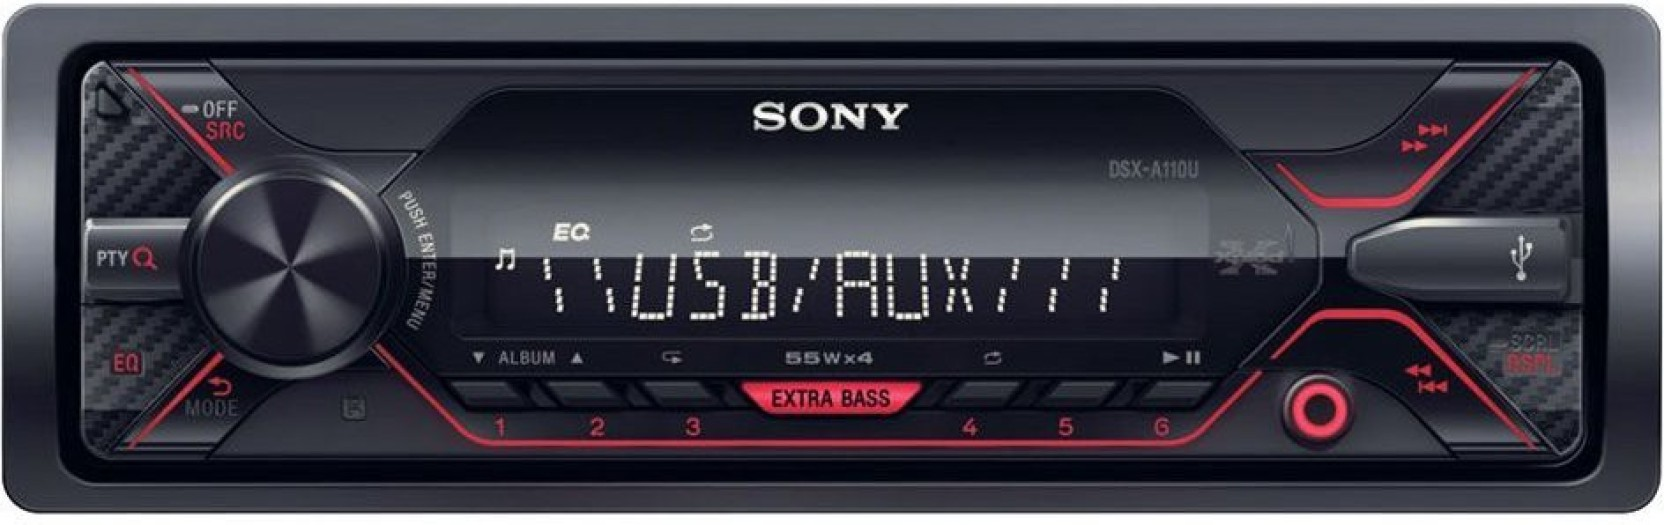 Sony Dsx A110u Media Receiver With Usb Car Stereo Price In India Bridgable 1600 4 Channel Class D Audio Amplifier Wiring Kit Ebay Add To Cart